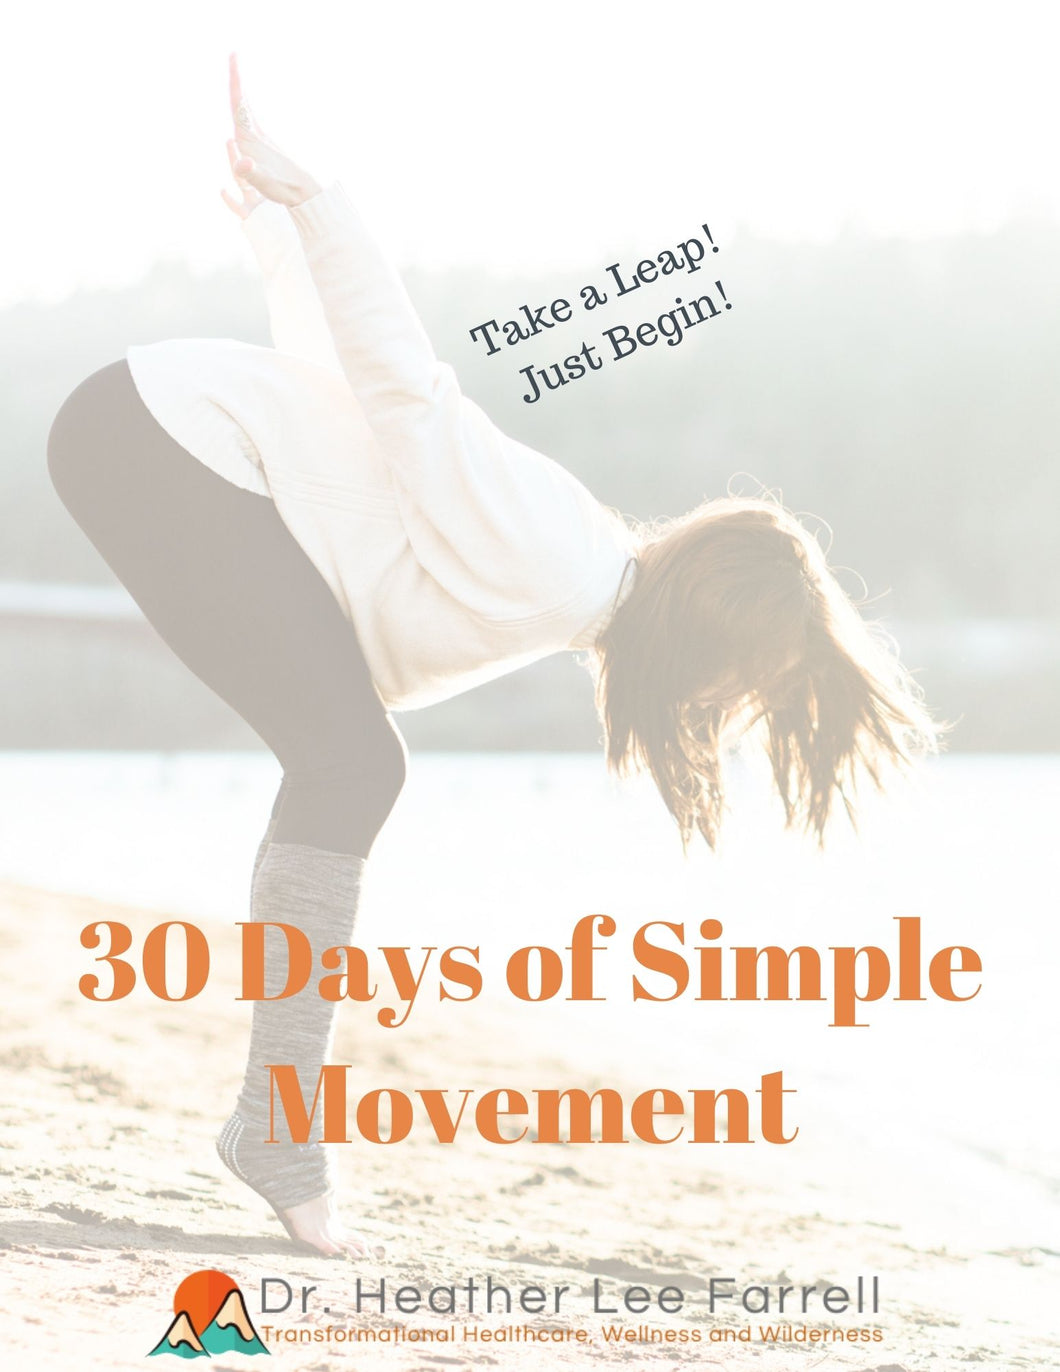 30 Days of Simple Movement